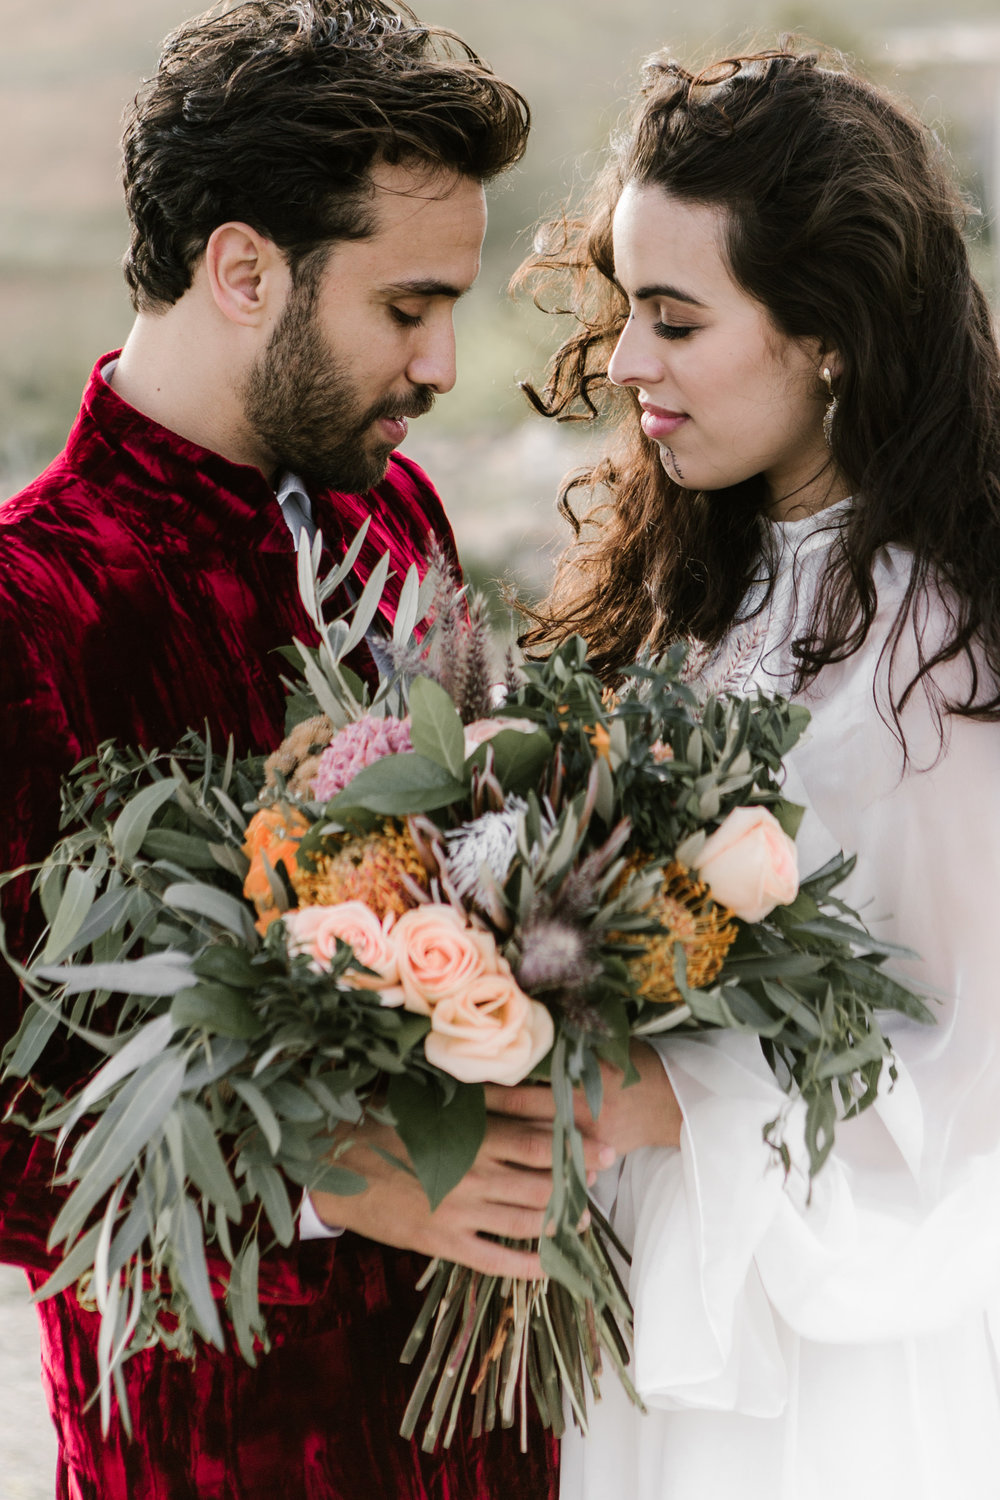 MINI ELOPEMENT PACKAGE - elopement with only celebrant without guests1500 euro- up to 3h photo cover + couple mini-shoot- 300 fully edited photos- special box with USB and 30 prints